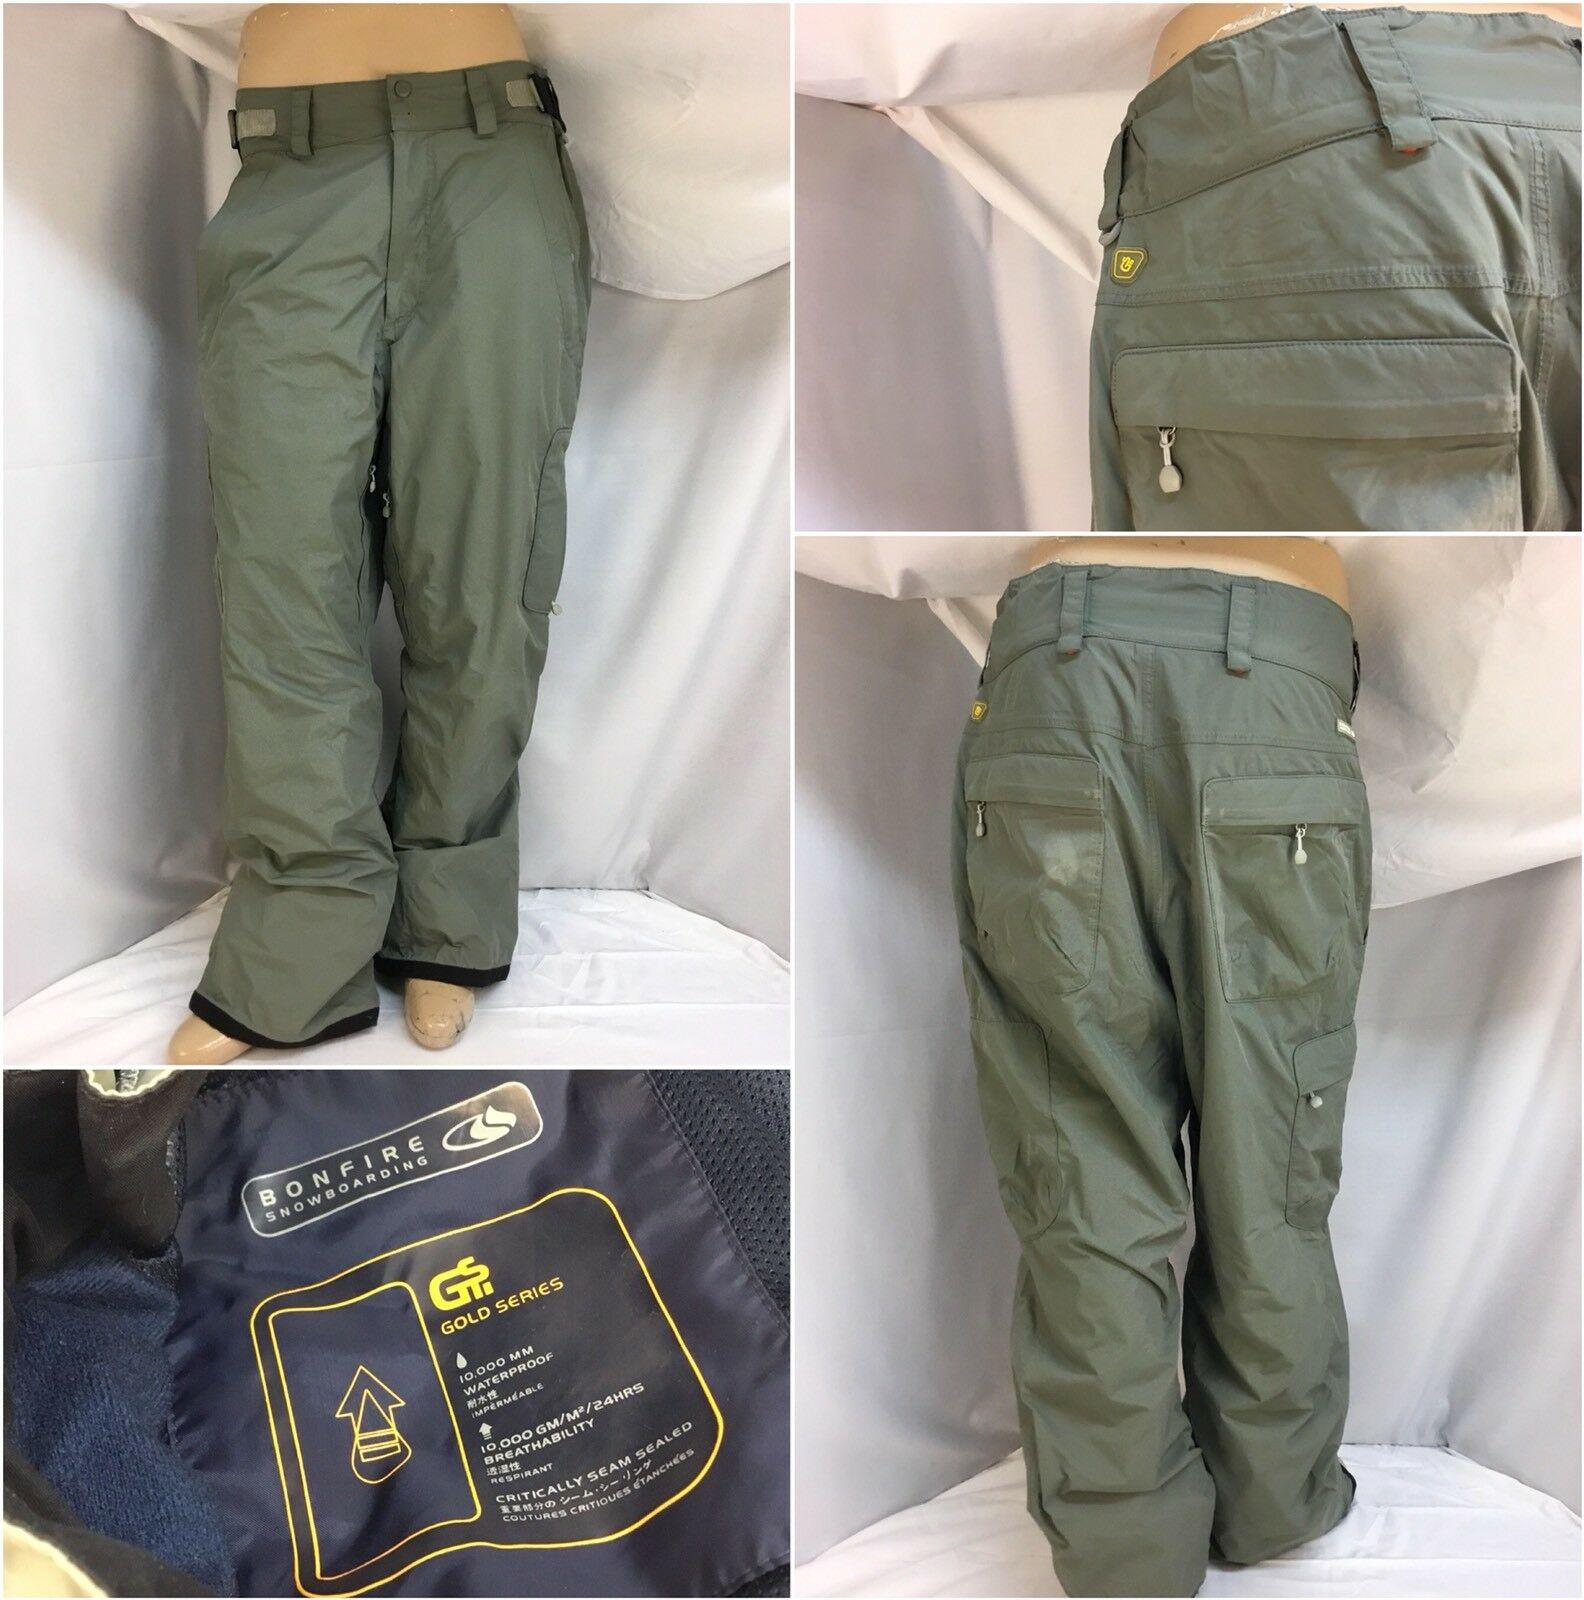 Bonfire Snowboarding Pants L Olive Gold Series 36x32 10,000 MM EUC YGI 9895